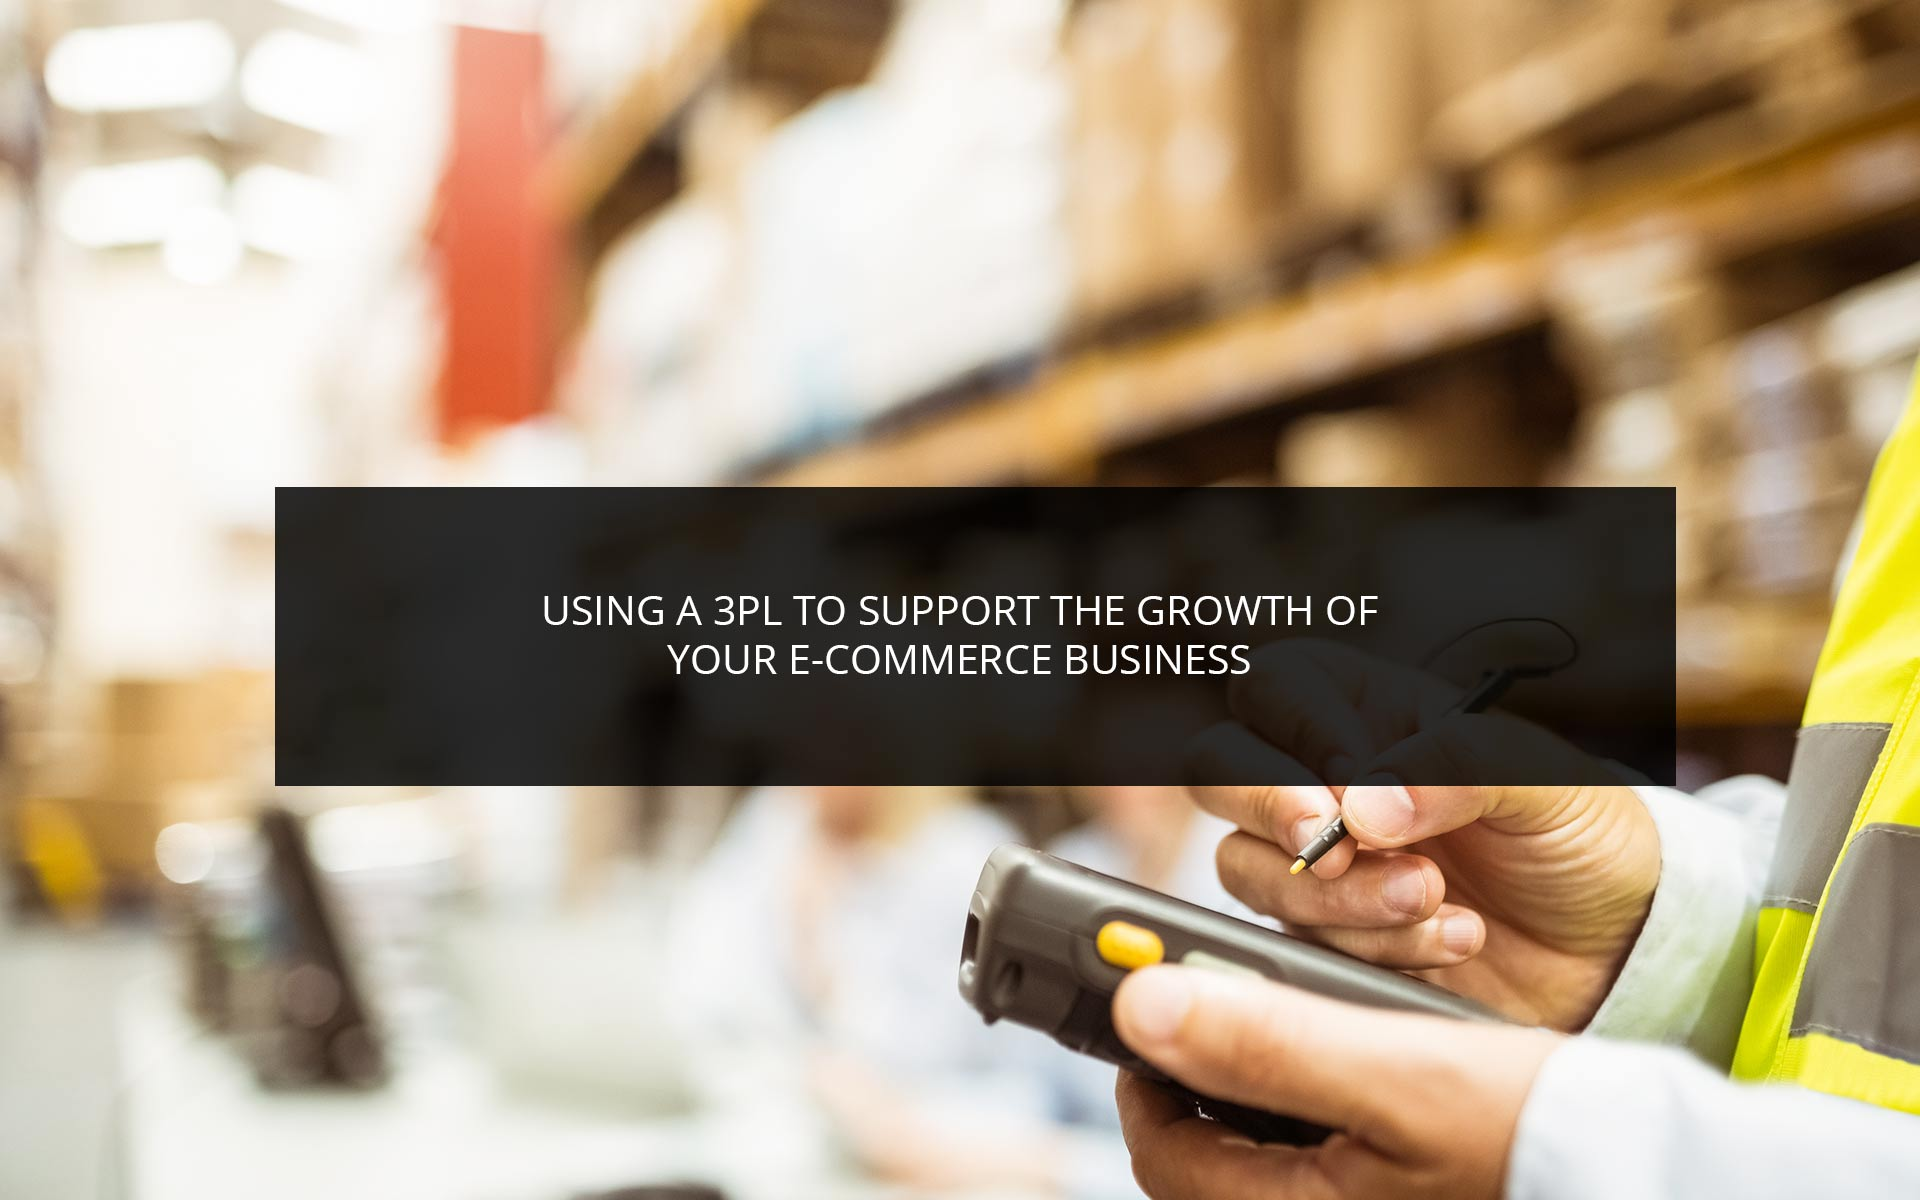 Using a 3PL to Support the Growth of Your e-Commerce Business